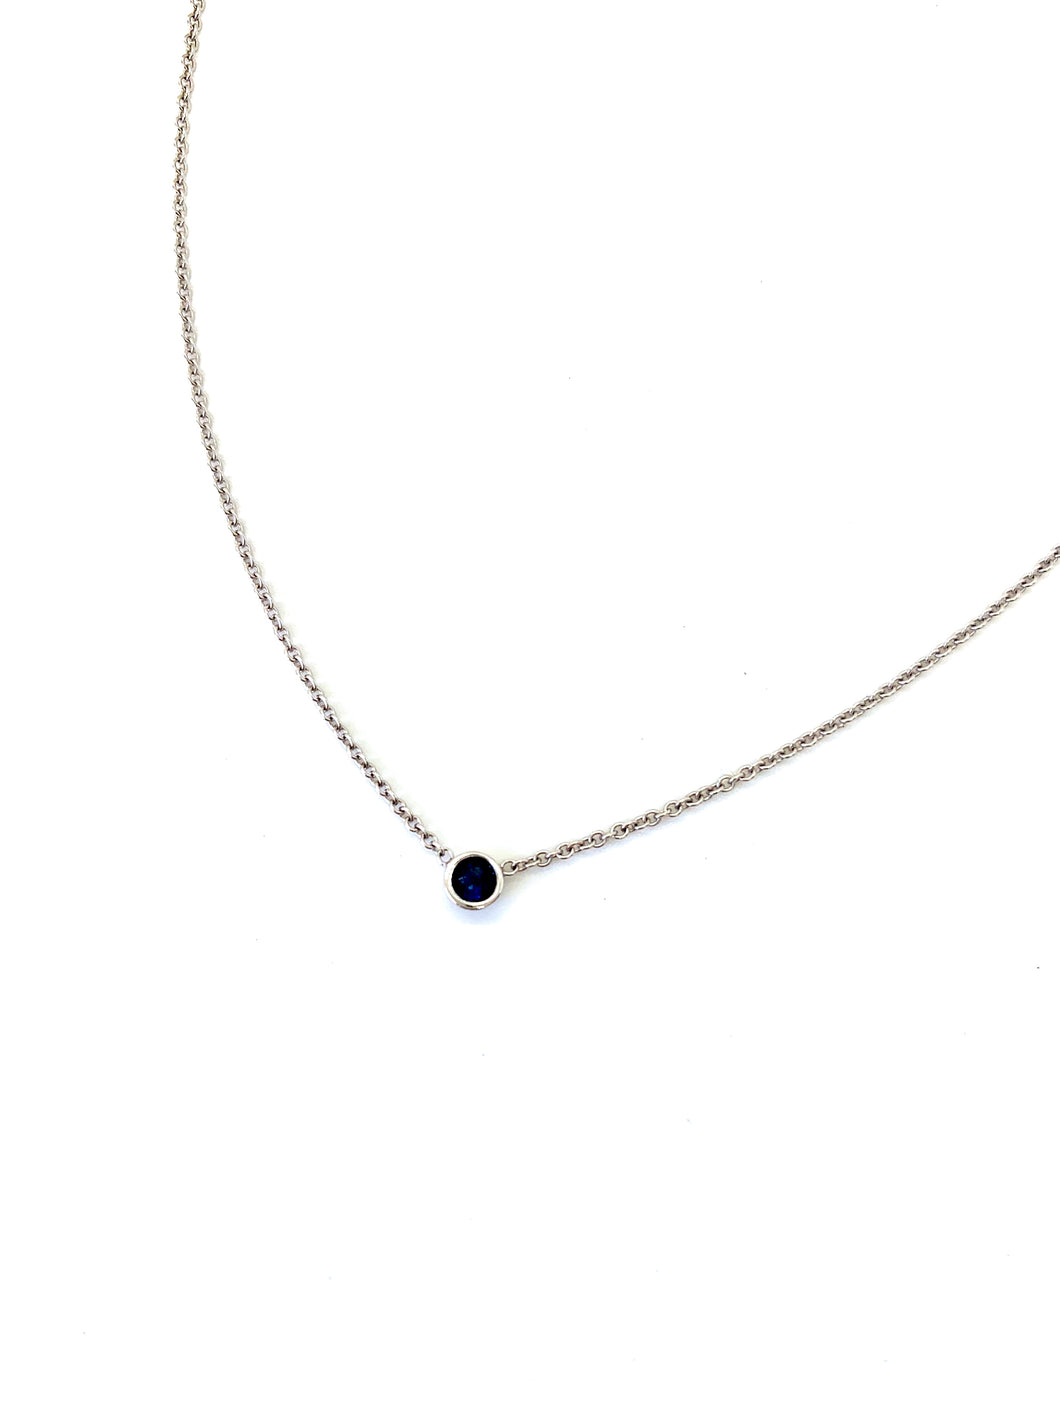 Connect to throat chakra energy for expression & communication with our sapphire necklace. Materials include a 16-inch 14k white gold chain with a 3mm blue sapphire gemstone. These necklaces are custom designed and hand assembled in the US. Custom variations are available by Contacting Us.